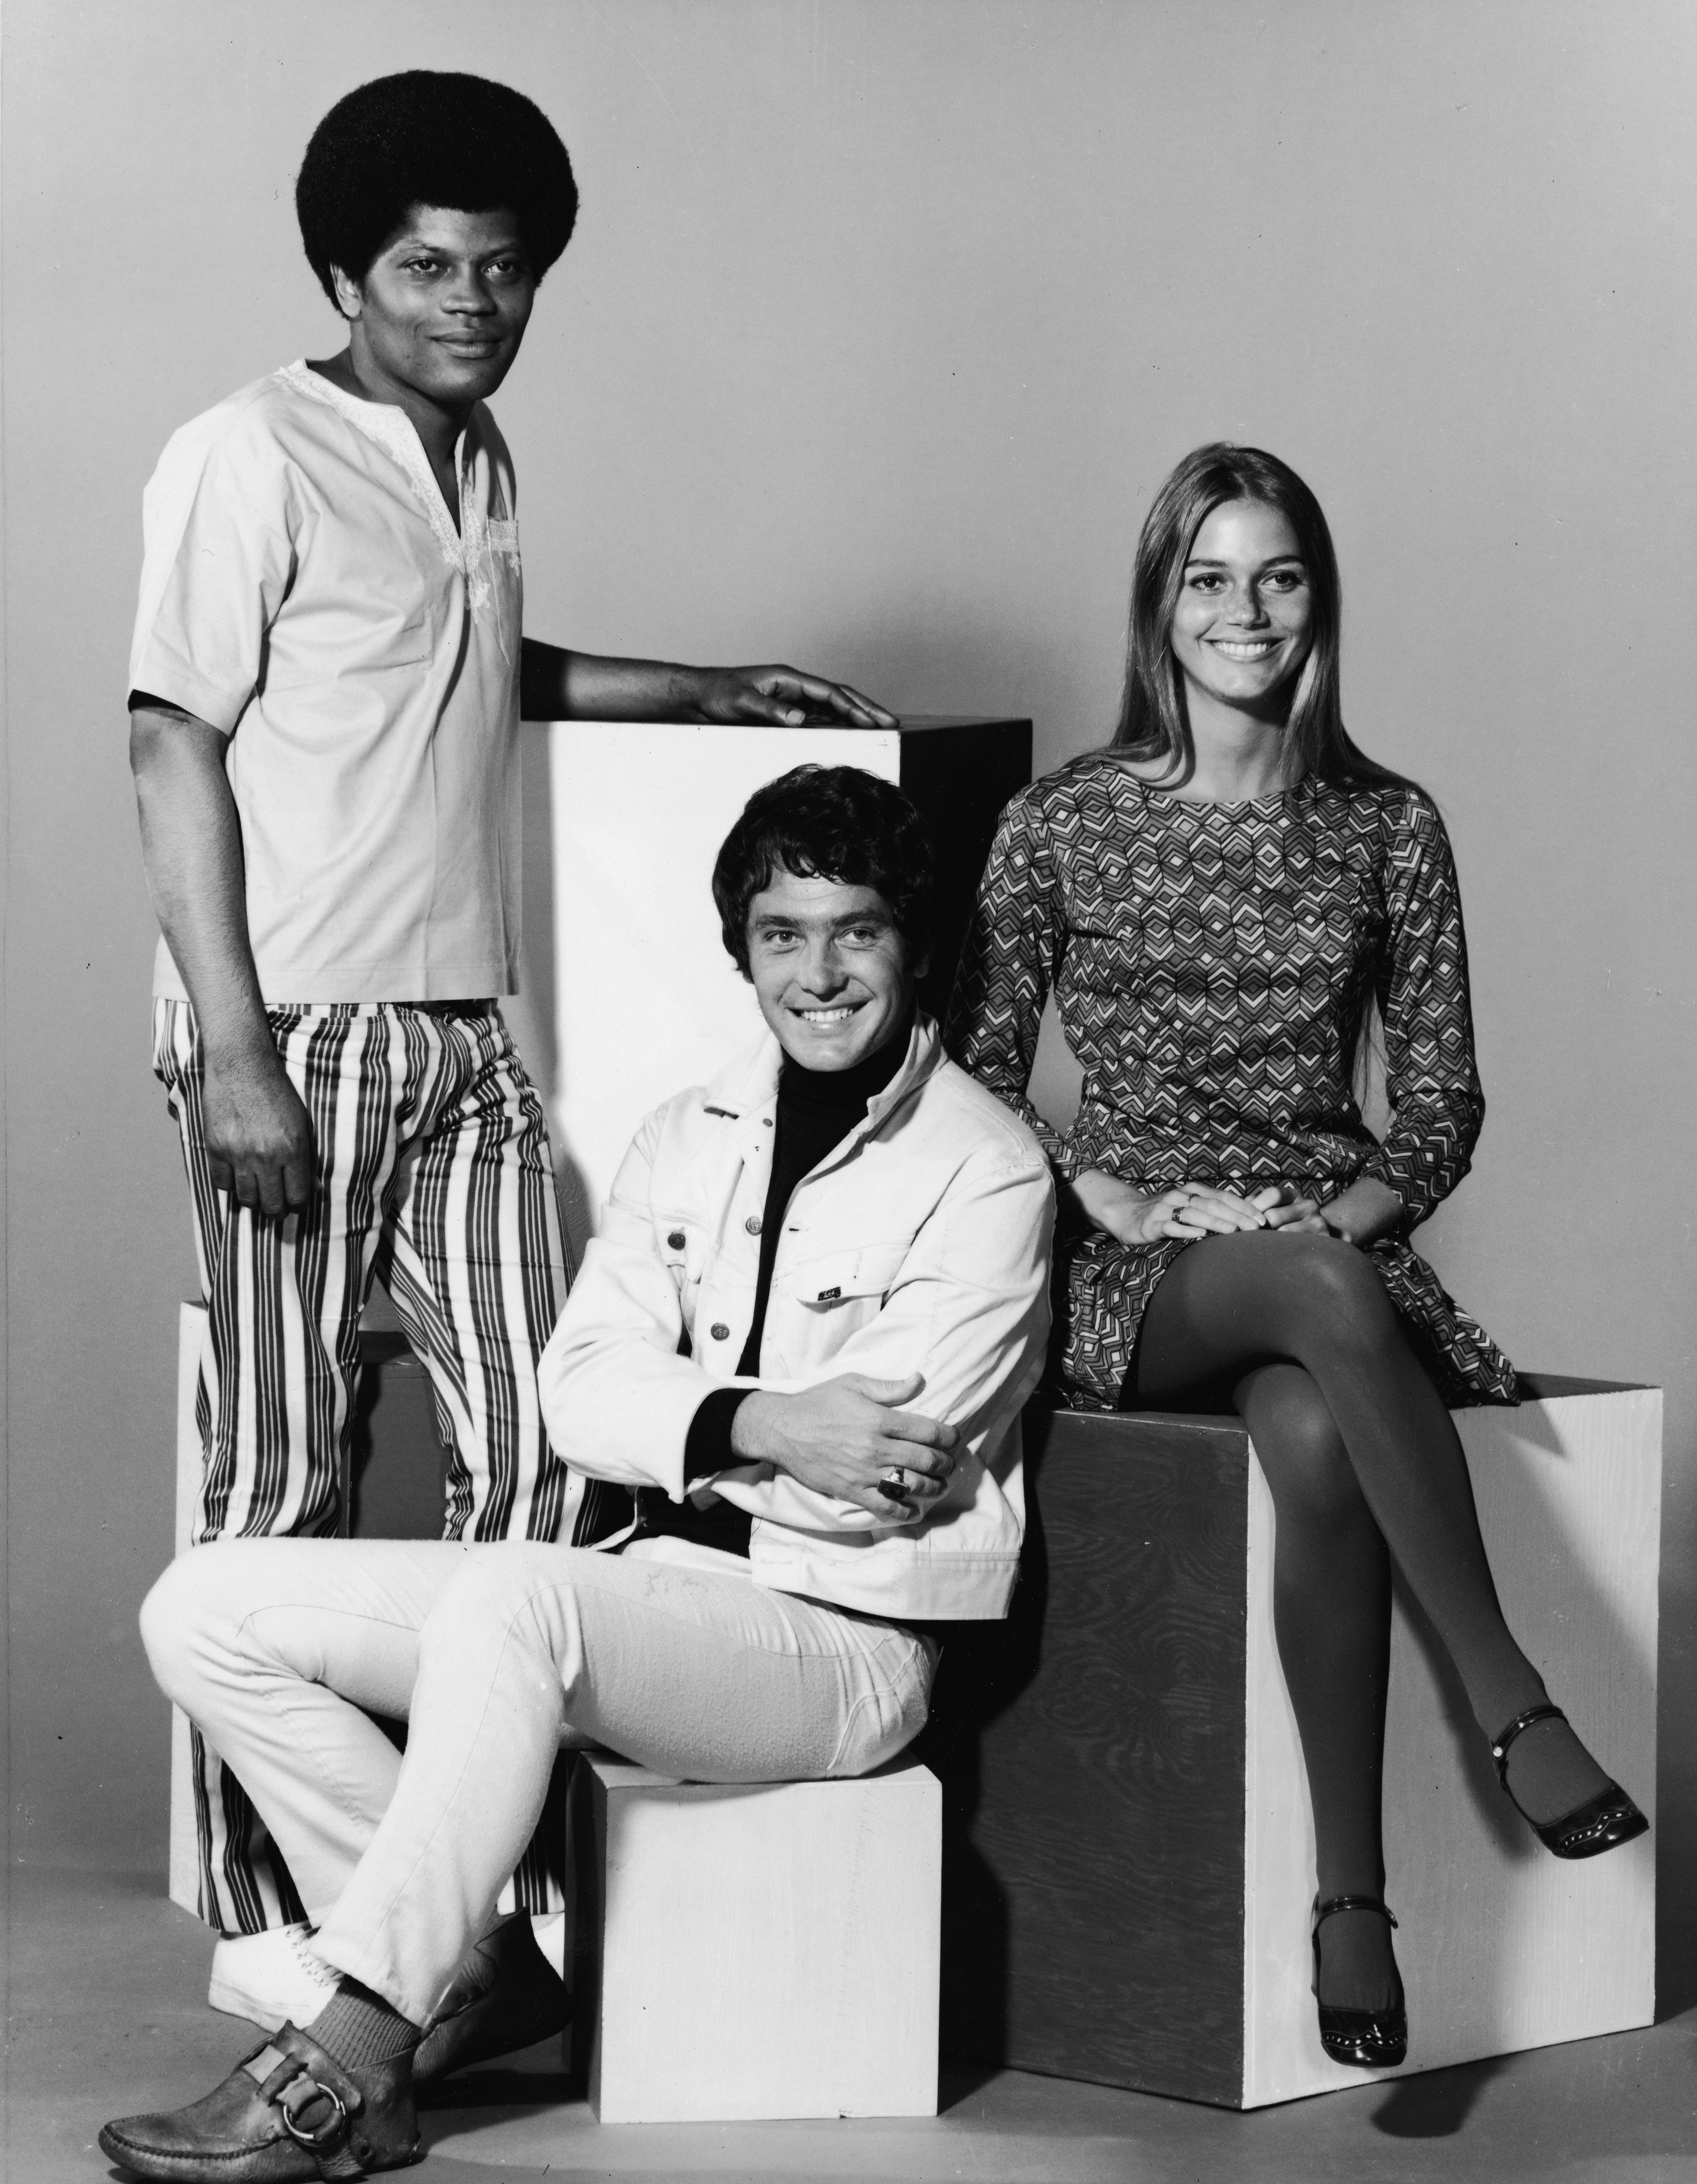 """Peggy Lipton posing with Clarence Williams III and Michael Cole for the show """"The Mod Squad"""" in 1968.   Photo: Getty Images"""